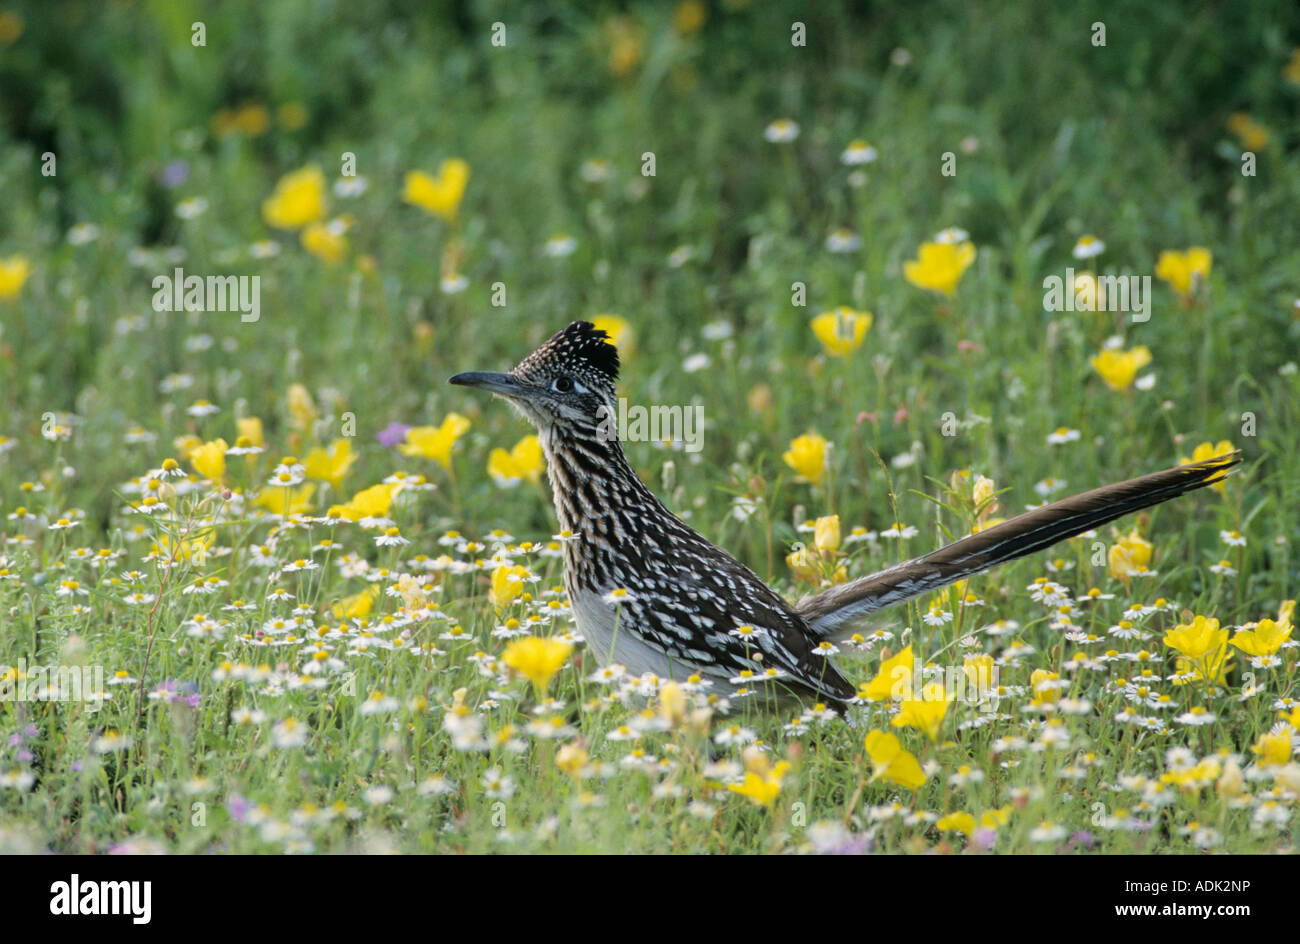 Greater Roadrunner Geococcyx californianus adult in wildflowers Choke Canyon State Park Texas USA April 2002 - Stock Image